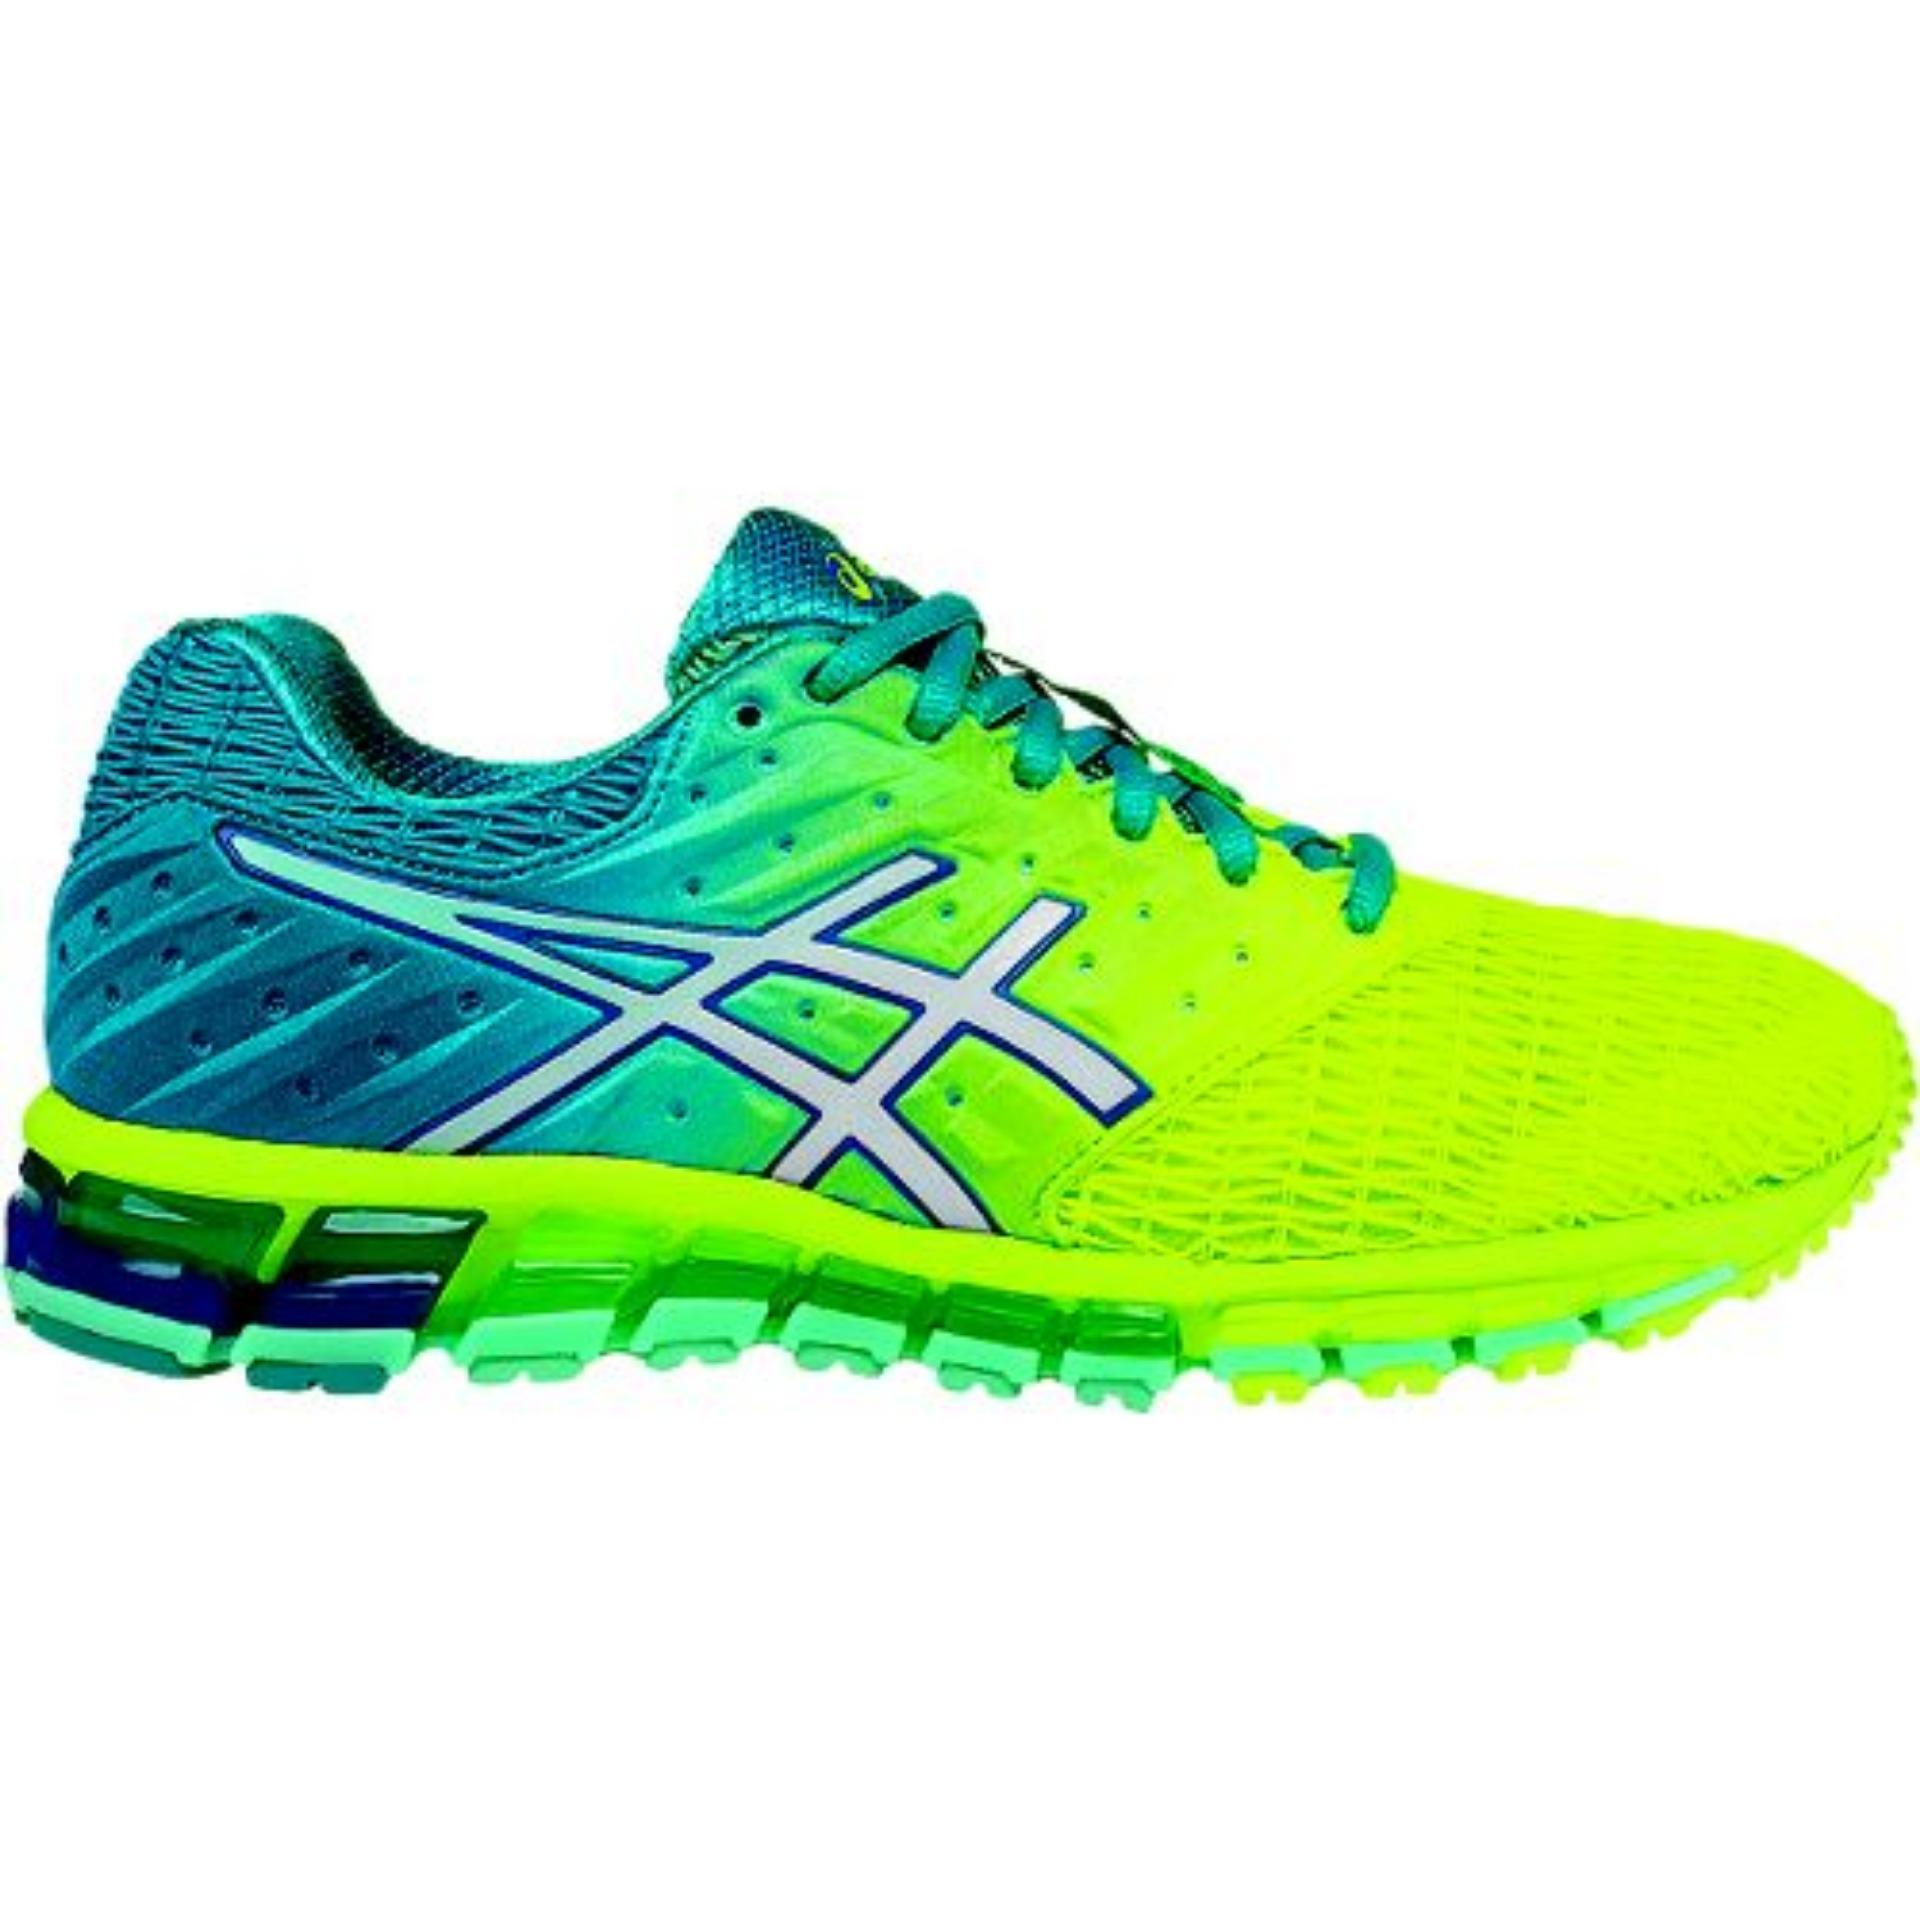 lowest price a70b7 20496 promo code for asics gel kinsei 6 gray running shoes 80415 ad1b0  canada  asicsgel quantum 180 2safety yellow white blue jewel 4002c 02066